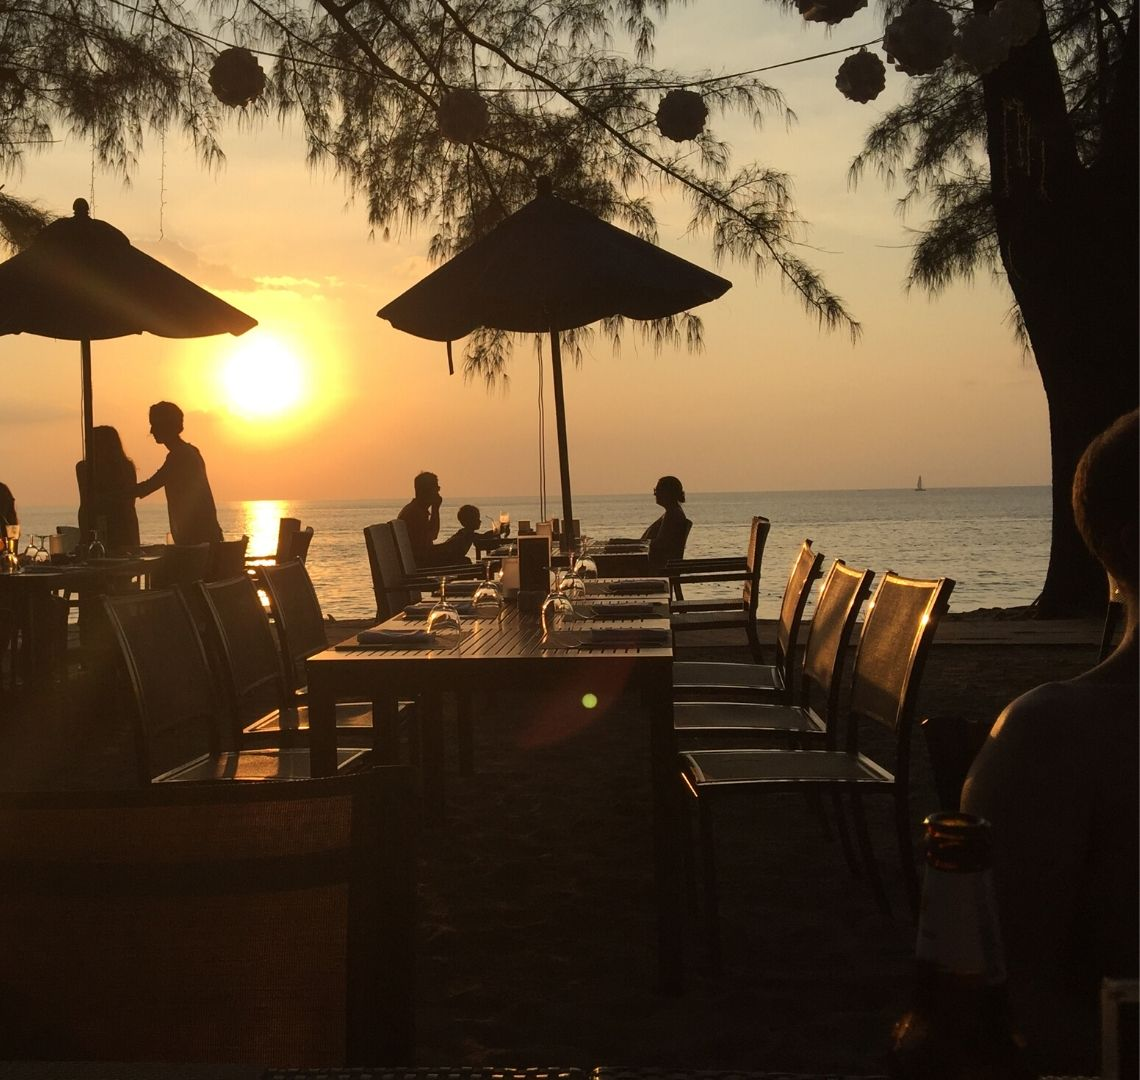 Best secret islands in Thailand with kids - the sun is setting over the sea at the beach in Phuket, in teh foreground are shadowed tables with umbrellas with a few people dining, a tree and some hanging lights that aren't yet on.